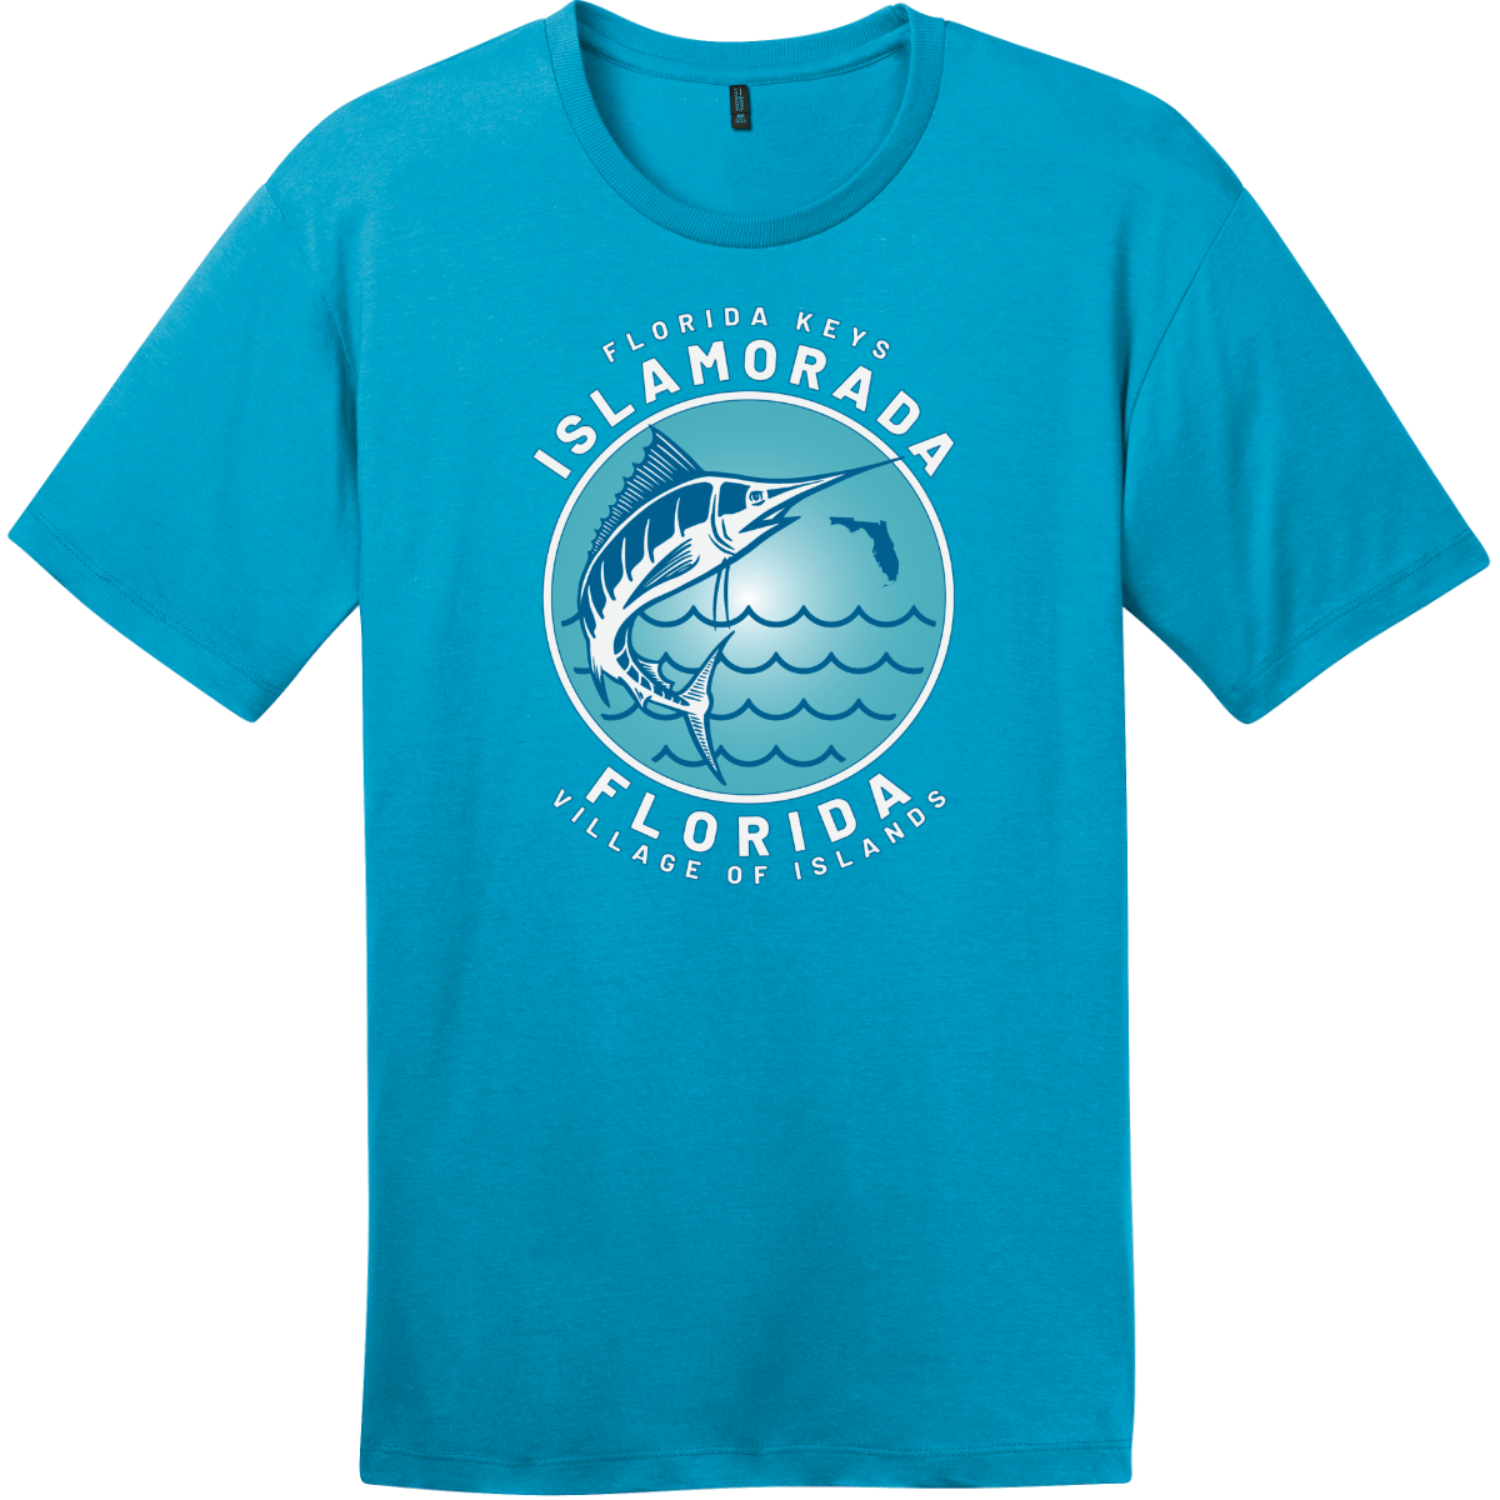 Islamorada Florida Keys Swordfish T-Shirt Bright Turquoise District Perfect Weight Tee DT104